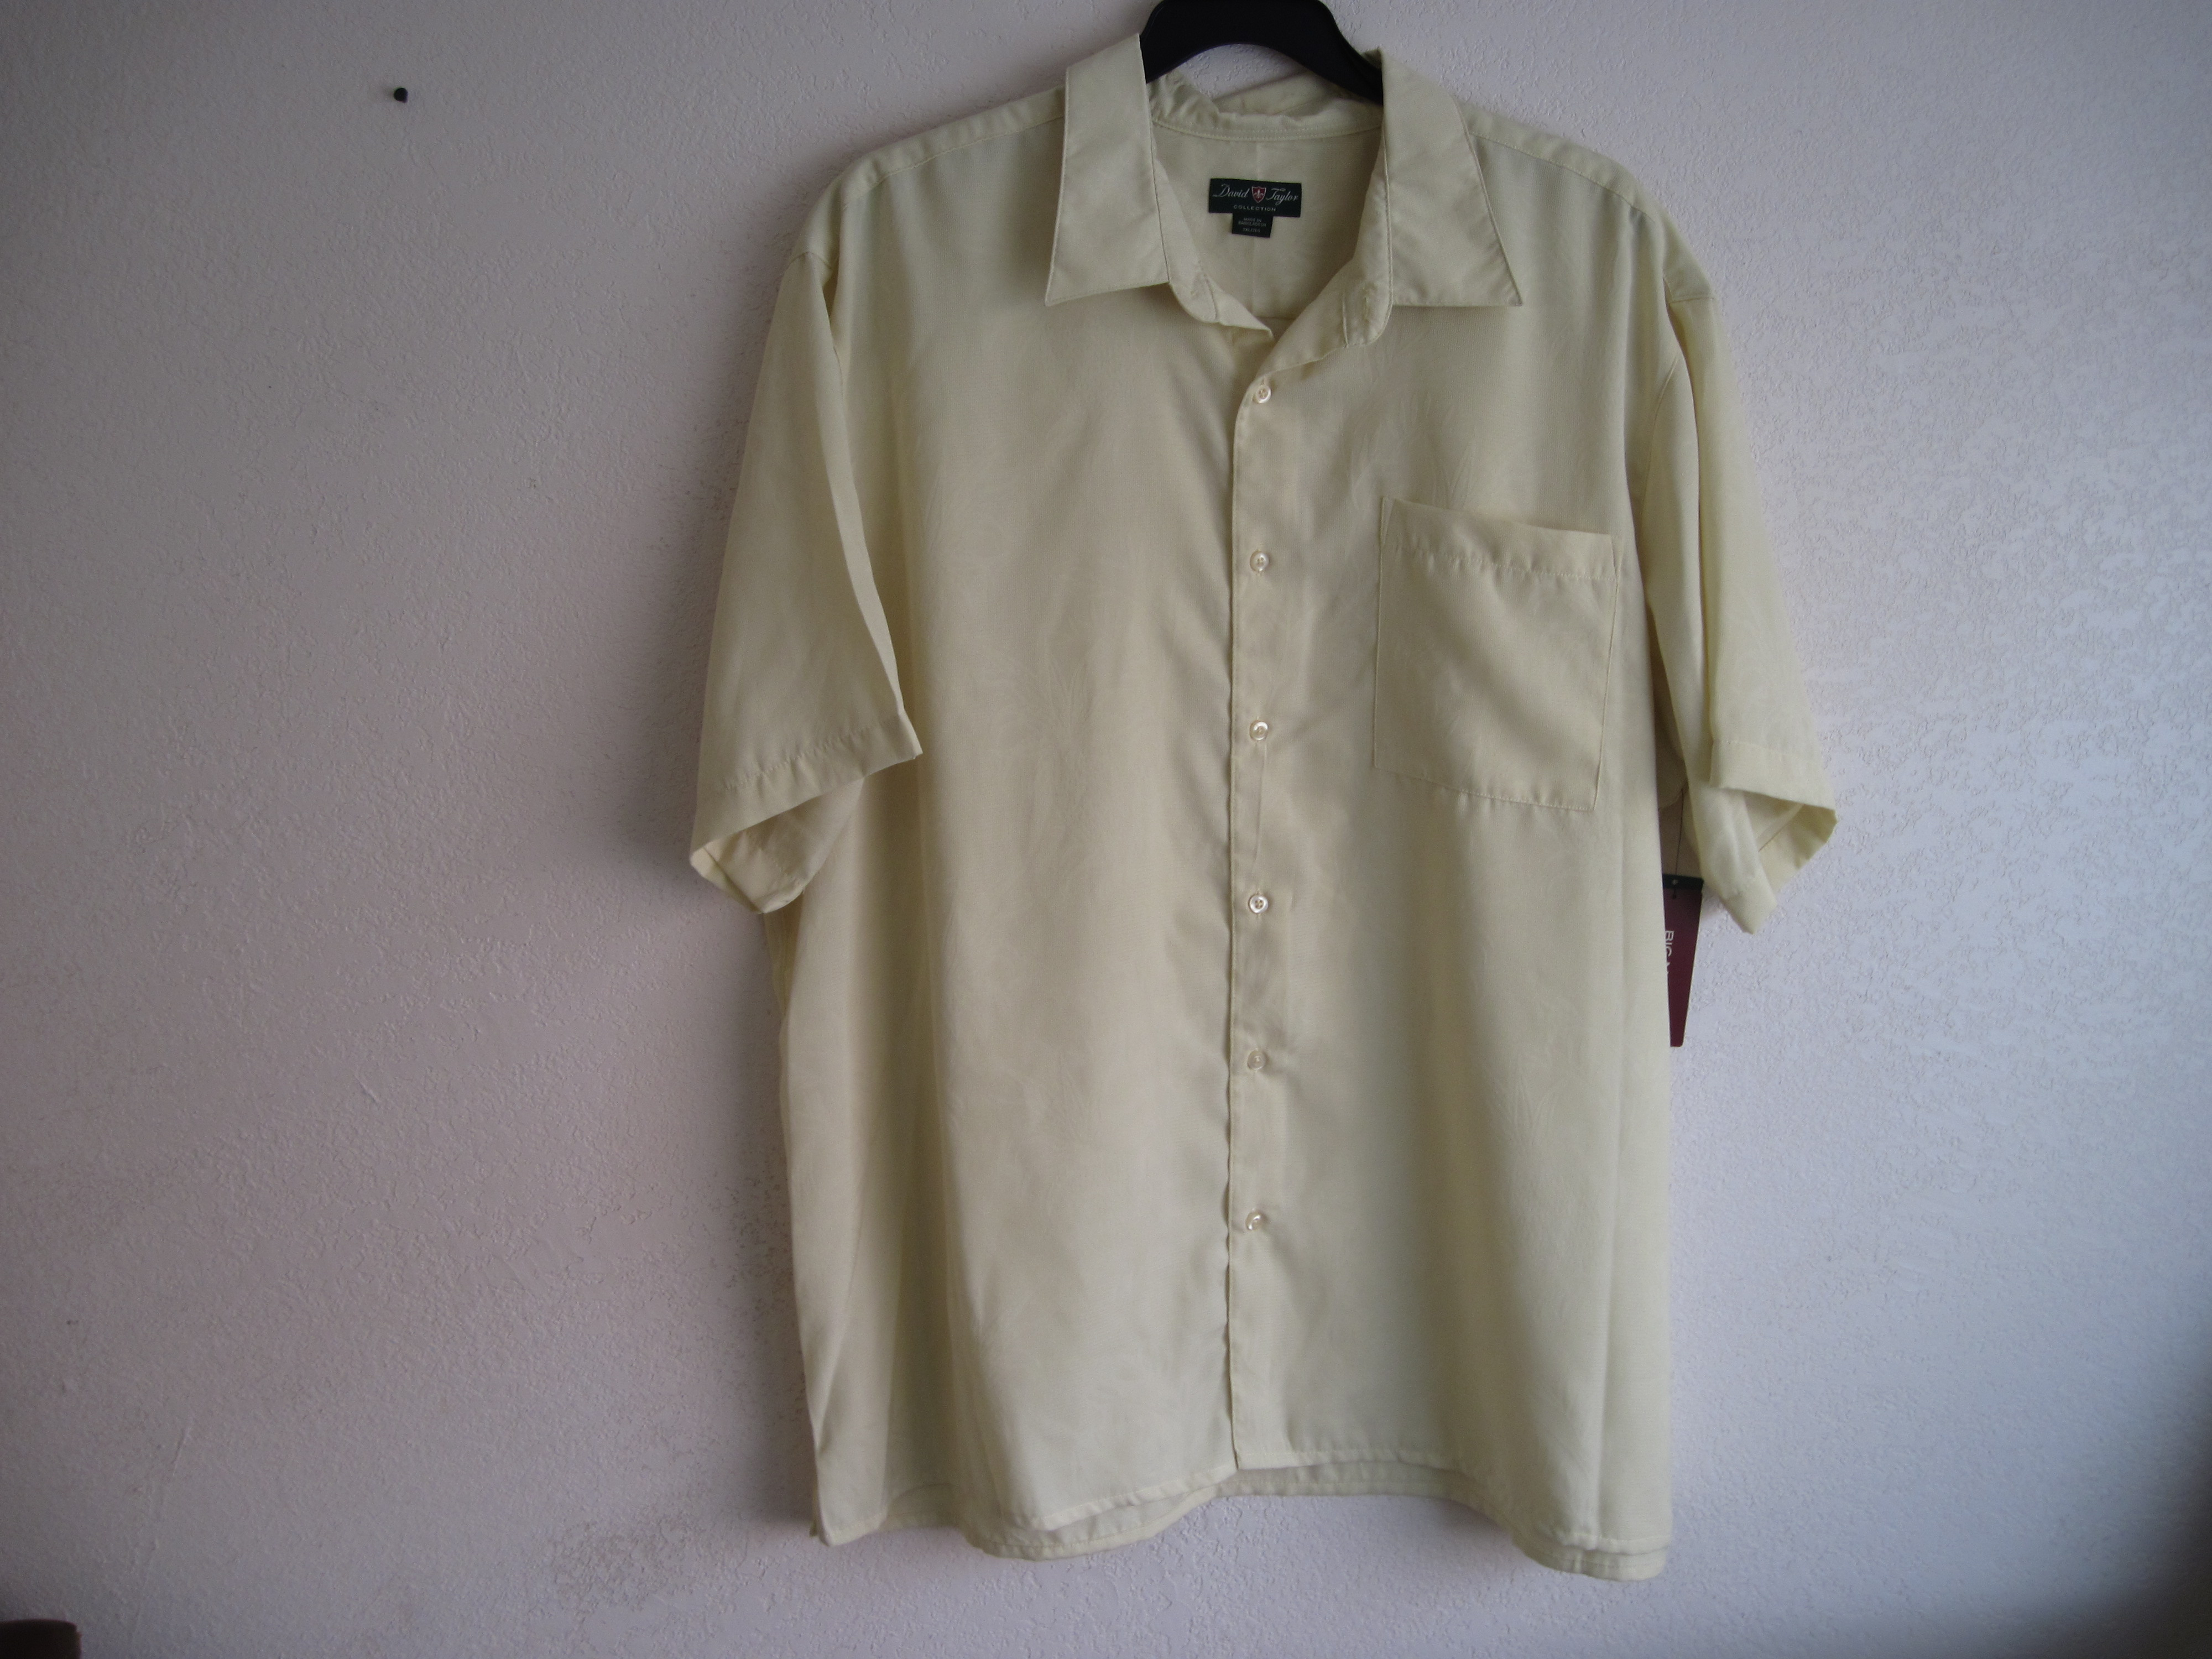 David Taylor Sz 2XL Mens Shirt (Yellow)